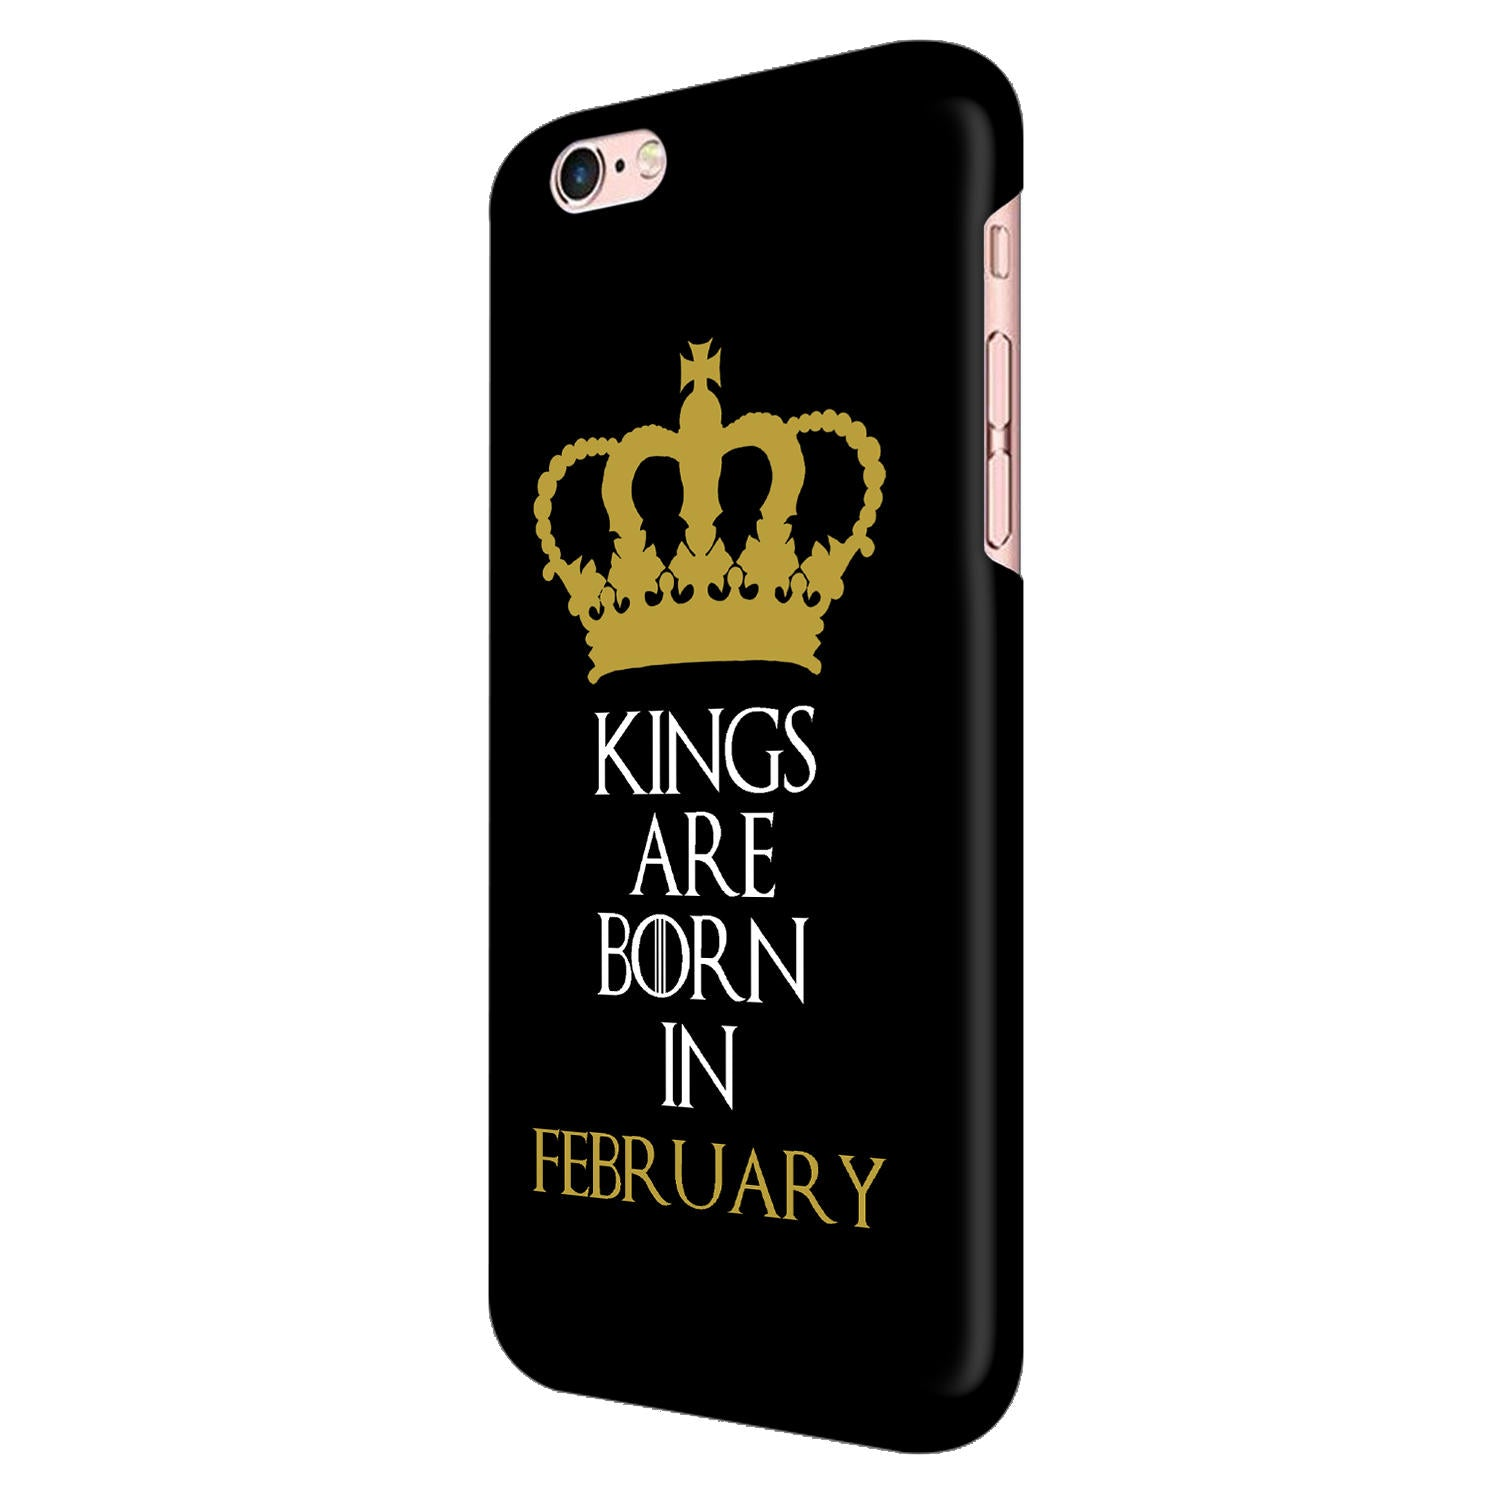 Kings February iPhone 6 Mobile Cover Case - MADANYU